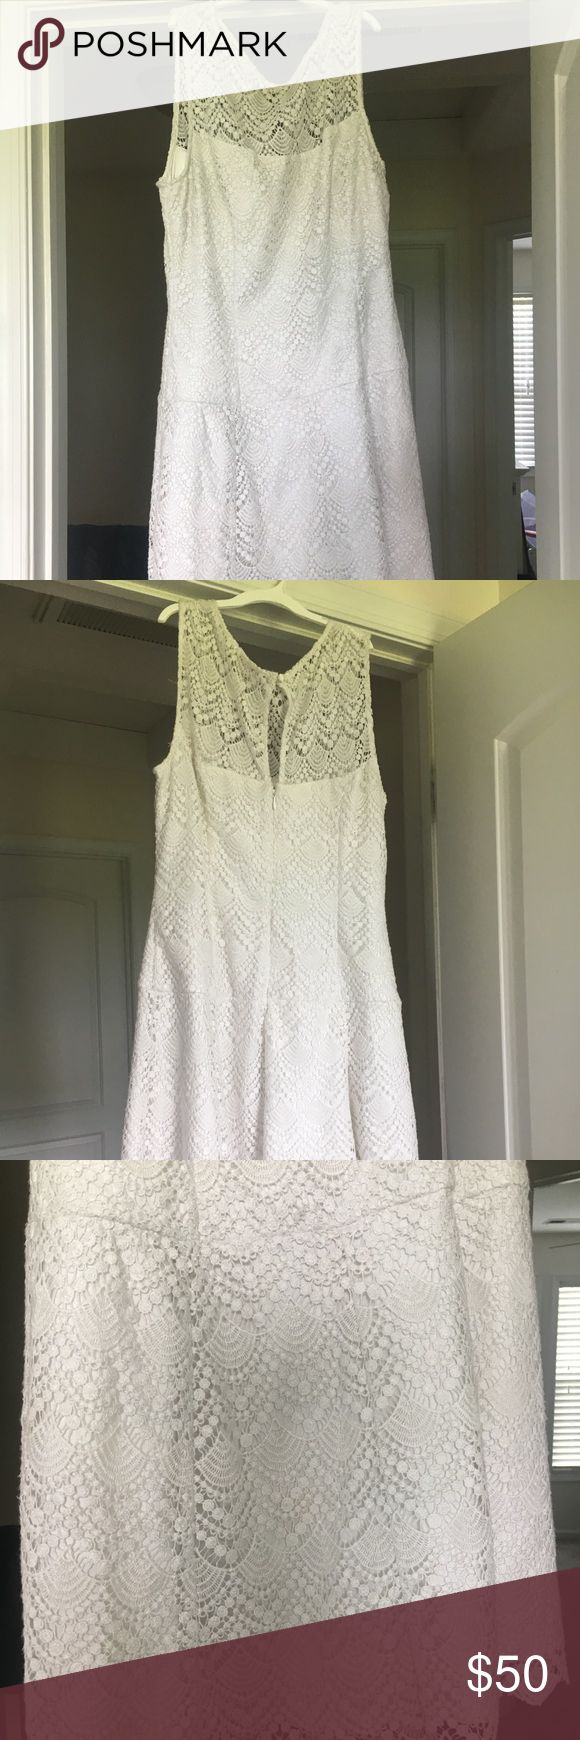 Beautiful Detailed White Lace Dress. Size 10. WHBM White House Black Market Dress. Size 10. Worn ONCE to my Rehearsal Dinner. Slight makeup stains around the collar, this may come out with a dry cleaning. Great condition. Beautiful lace details. Thick slip underneath so it isn't shear/see through. White House Black Market Dresses Wedding